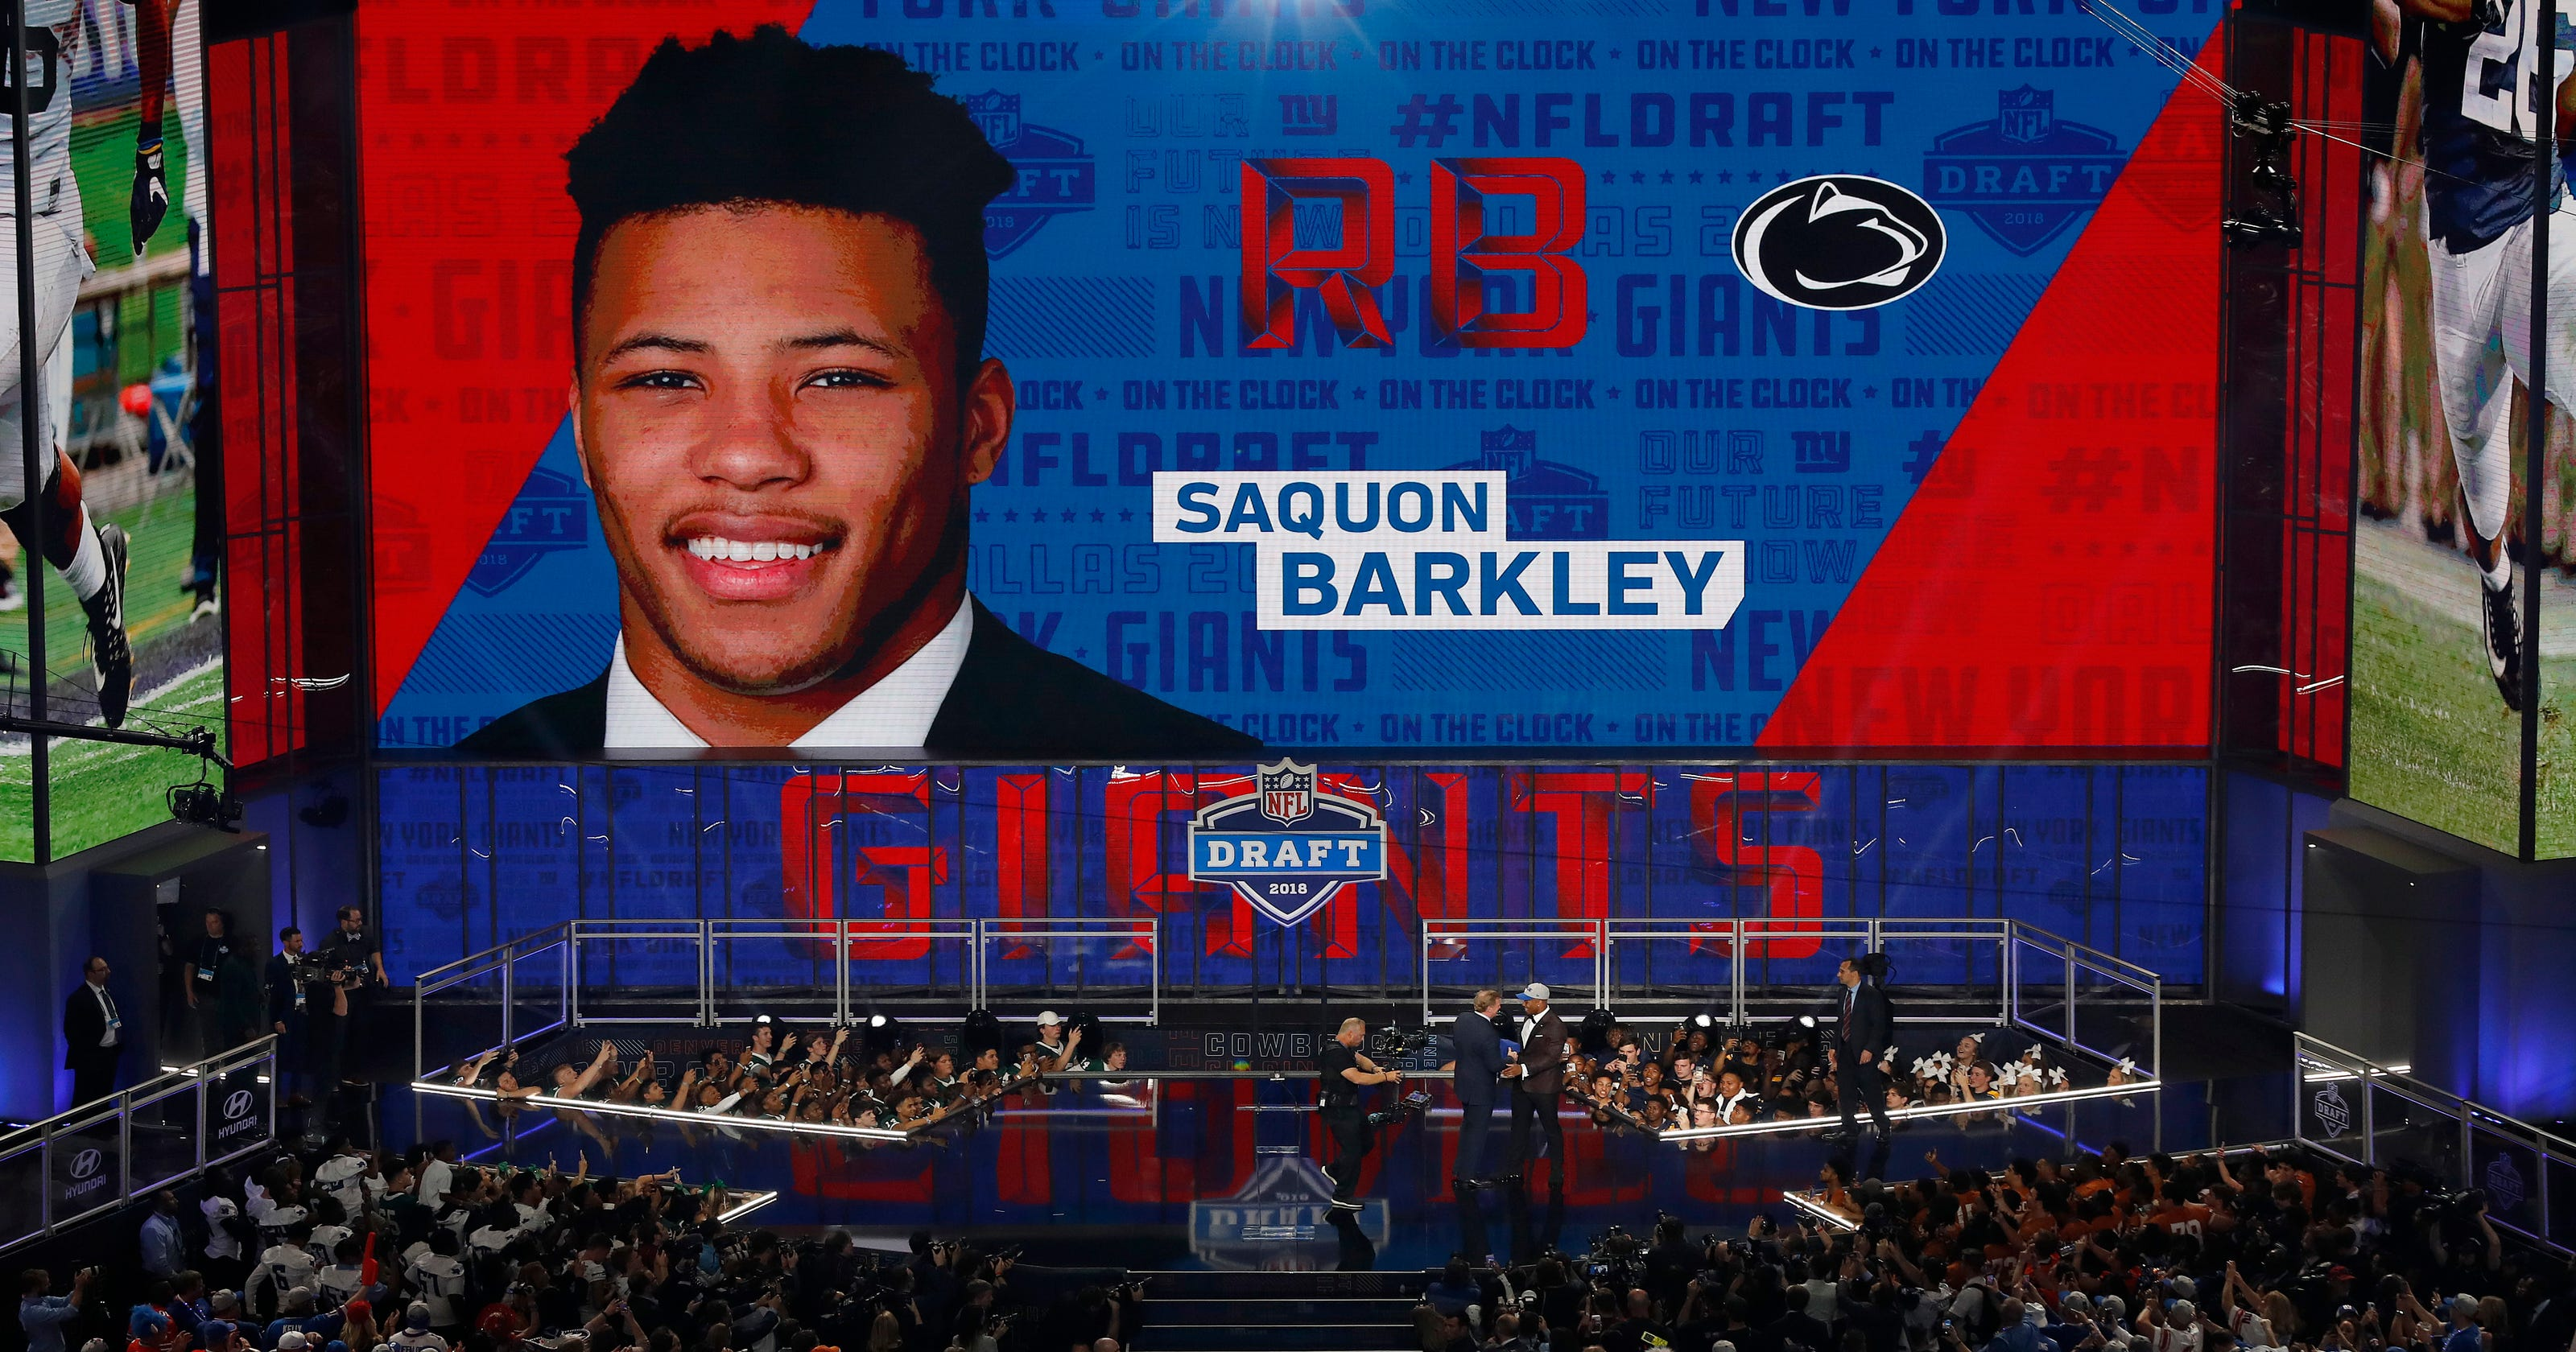 NFL Draft 2018  5 takeaways from the New York Giants selection of Saquon  Barkley 03f942f02